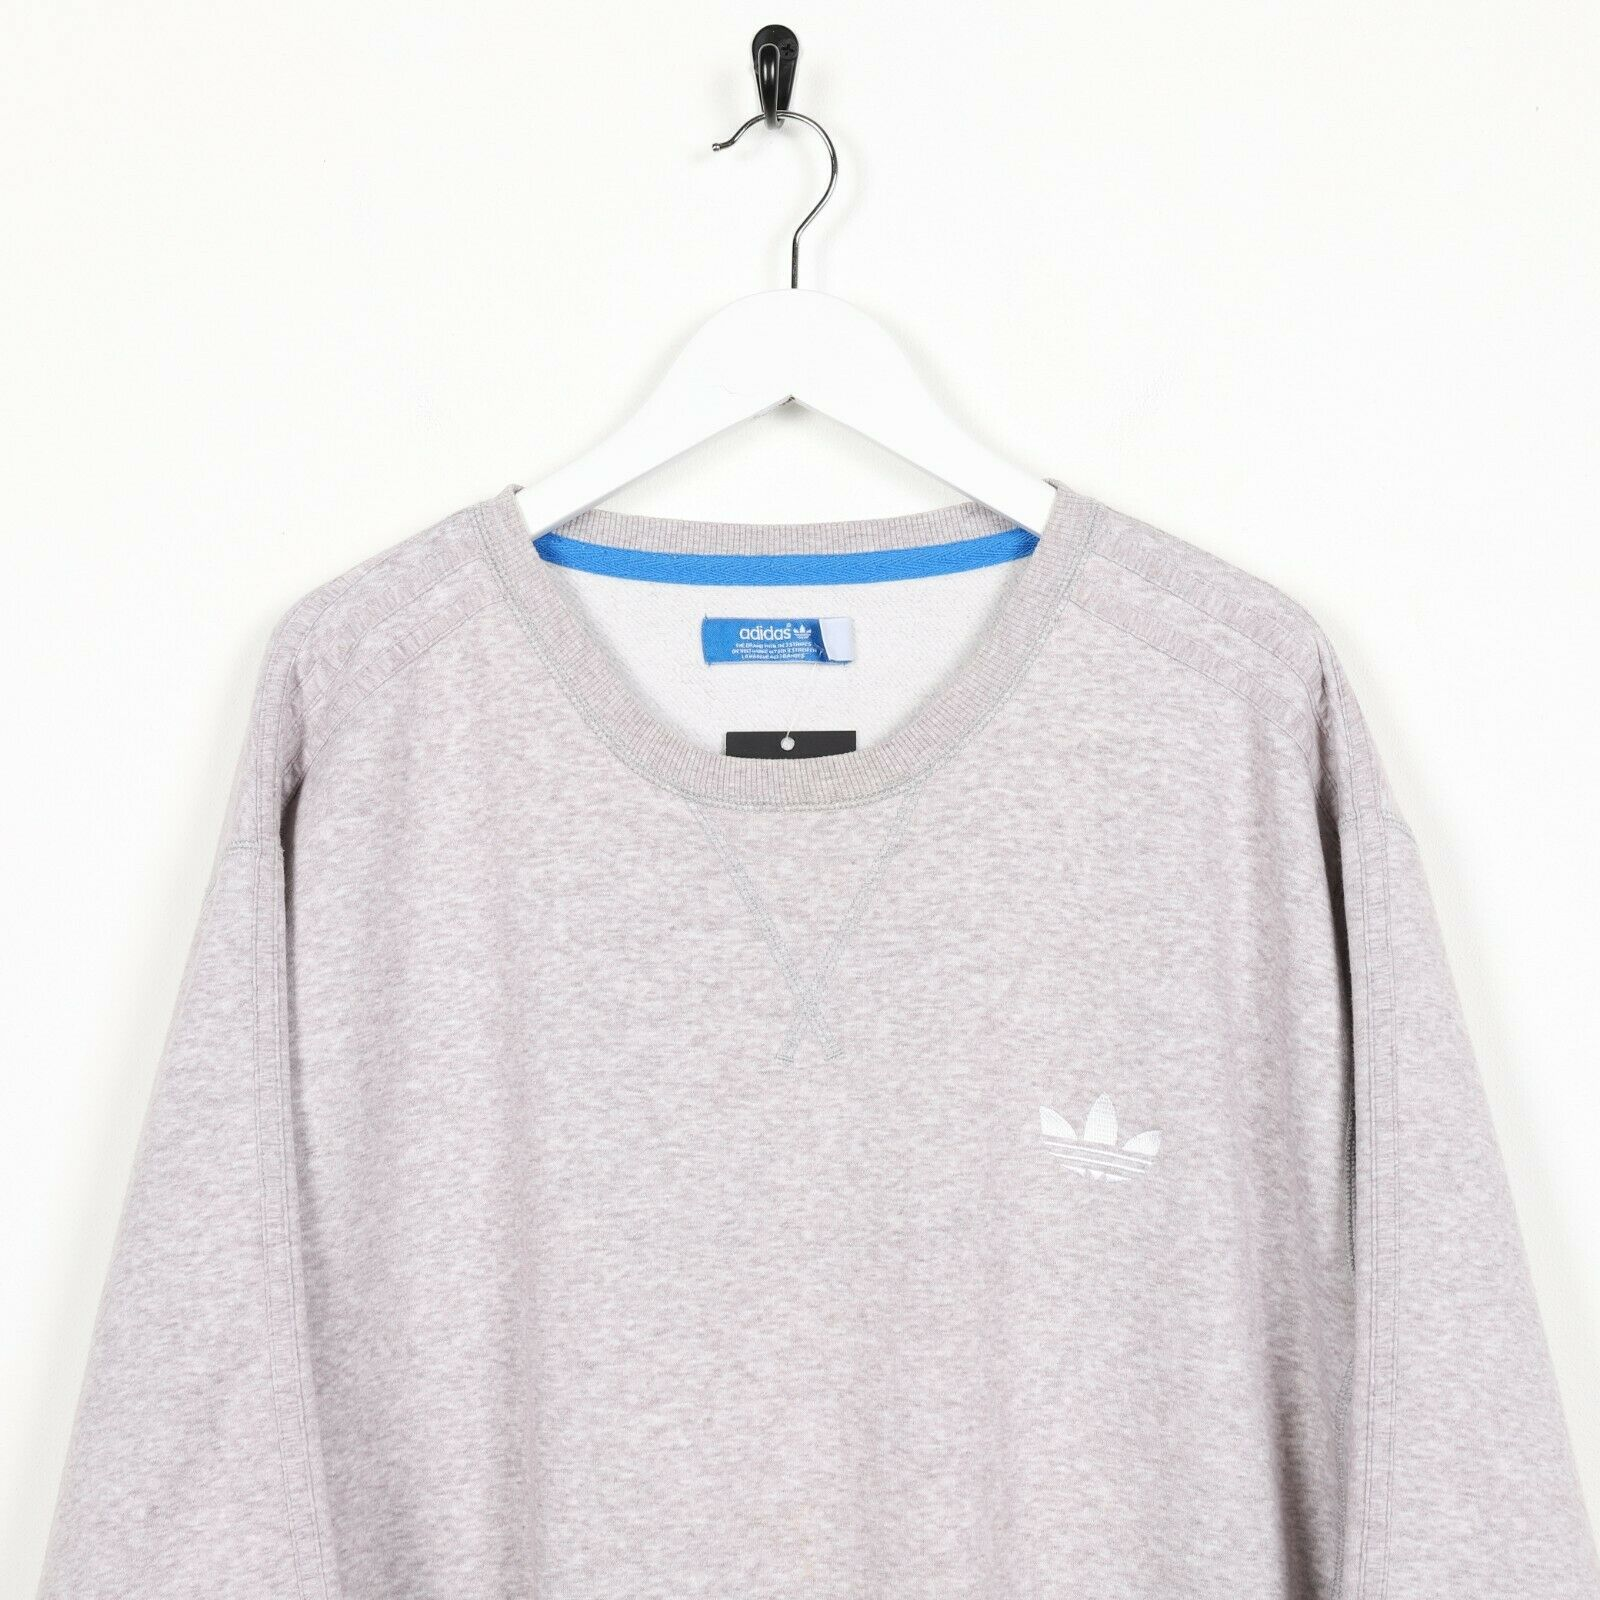 Vintage ADIDAS ORIGINALS Small Trefoil Logo Sweatshirt Jumper Grey | XL